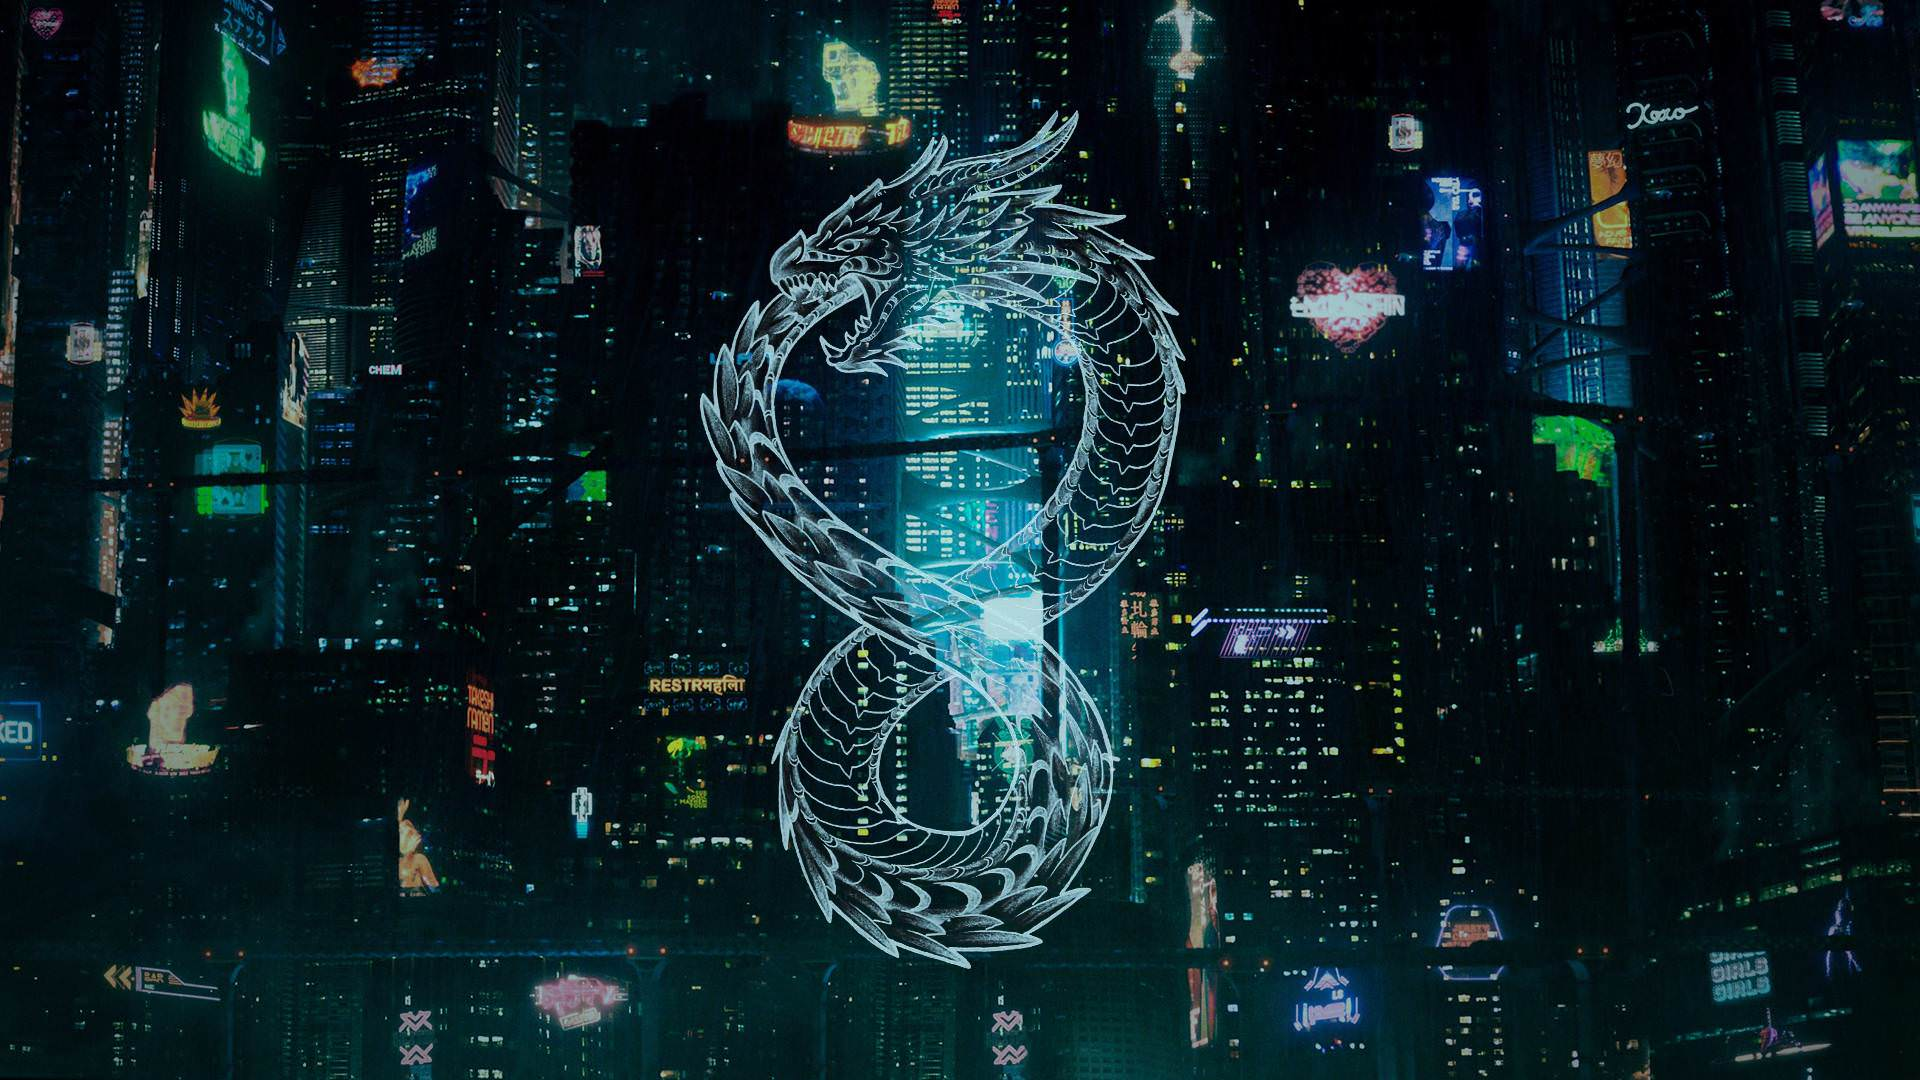 Altered Carbon 2 Wallpapers - Wallpaper Cave